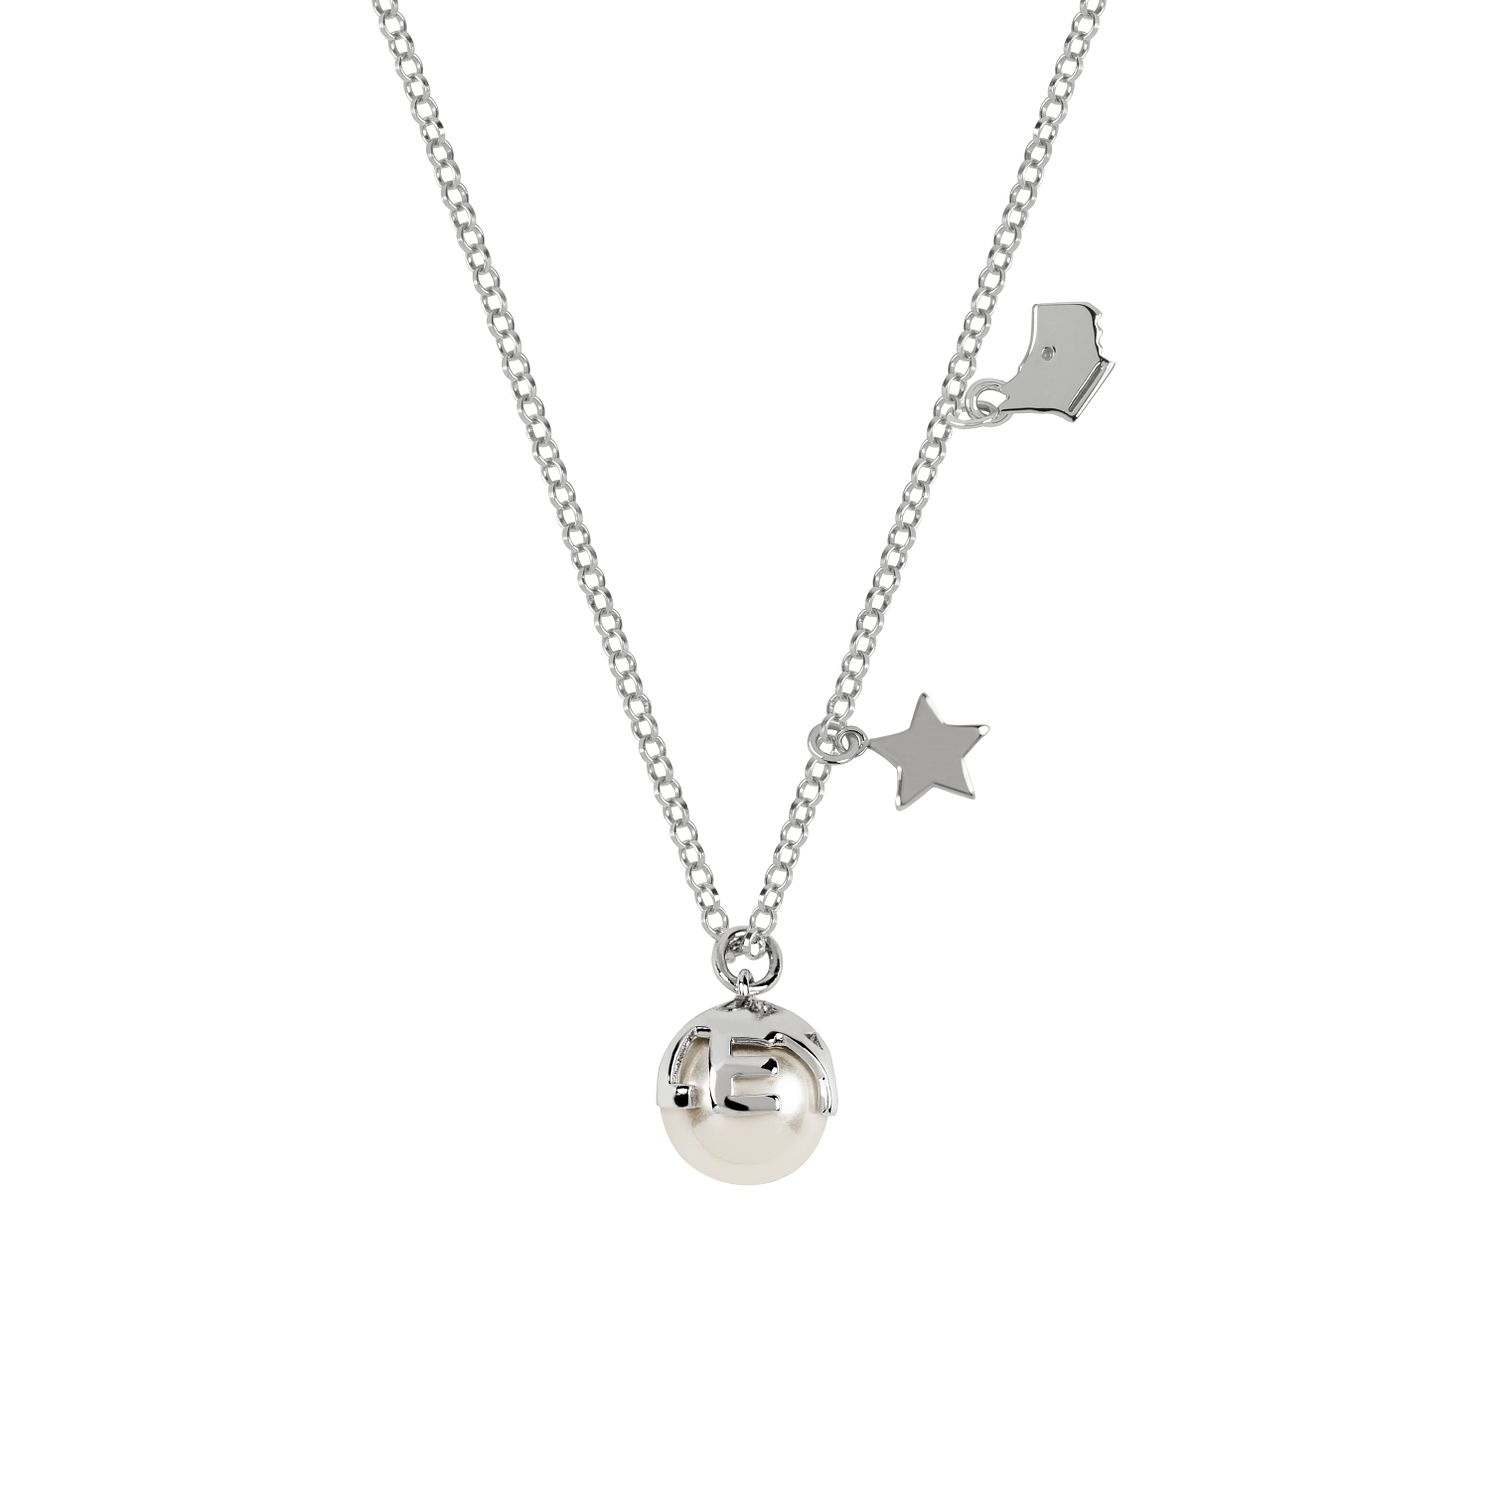 Radley Silver Tone Pearl & Star Charm Necklace - Product number 6088600